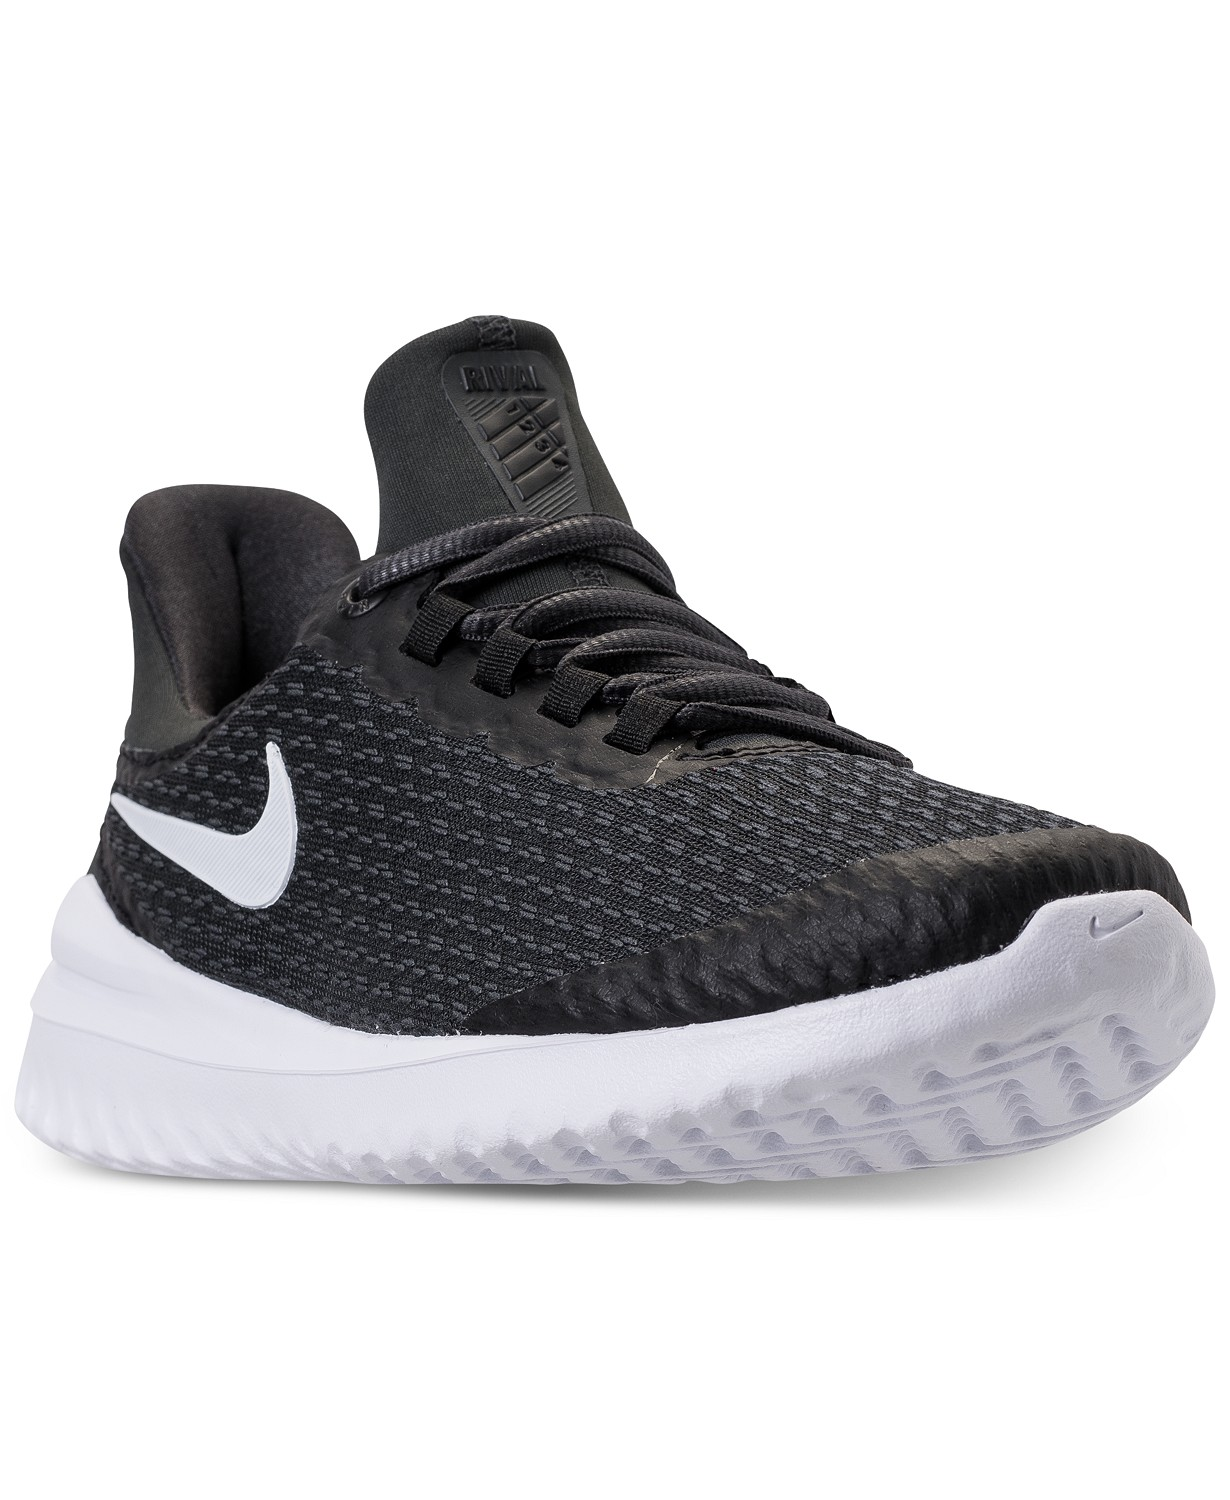 Nike Women's Renew Rival Running Sneakers